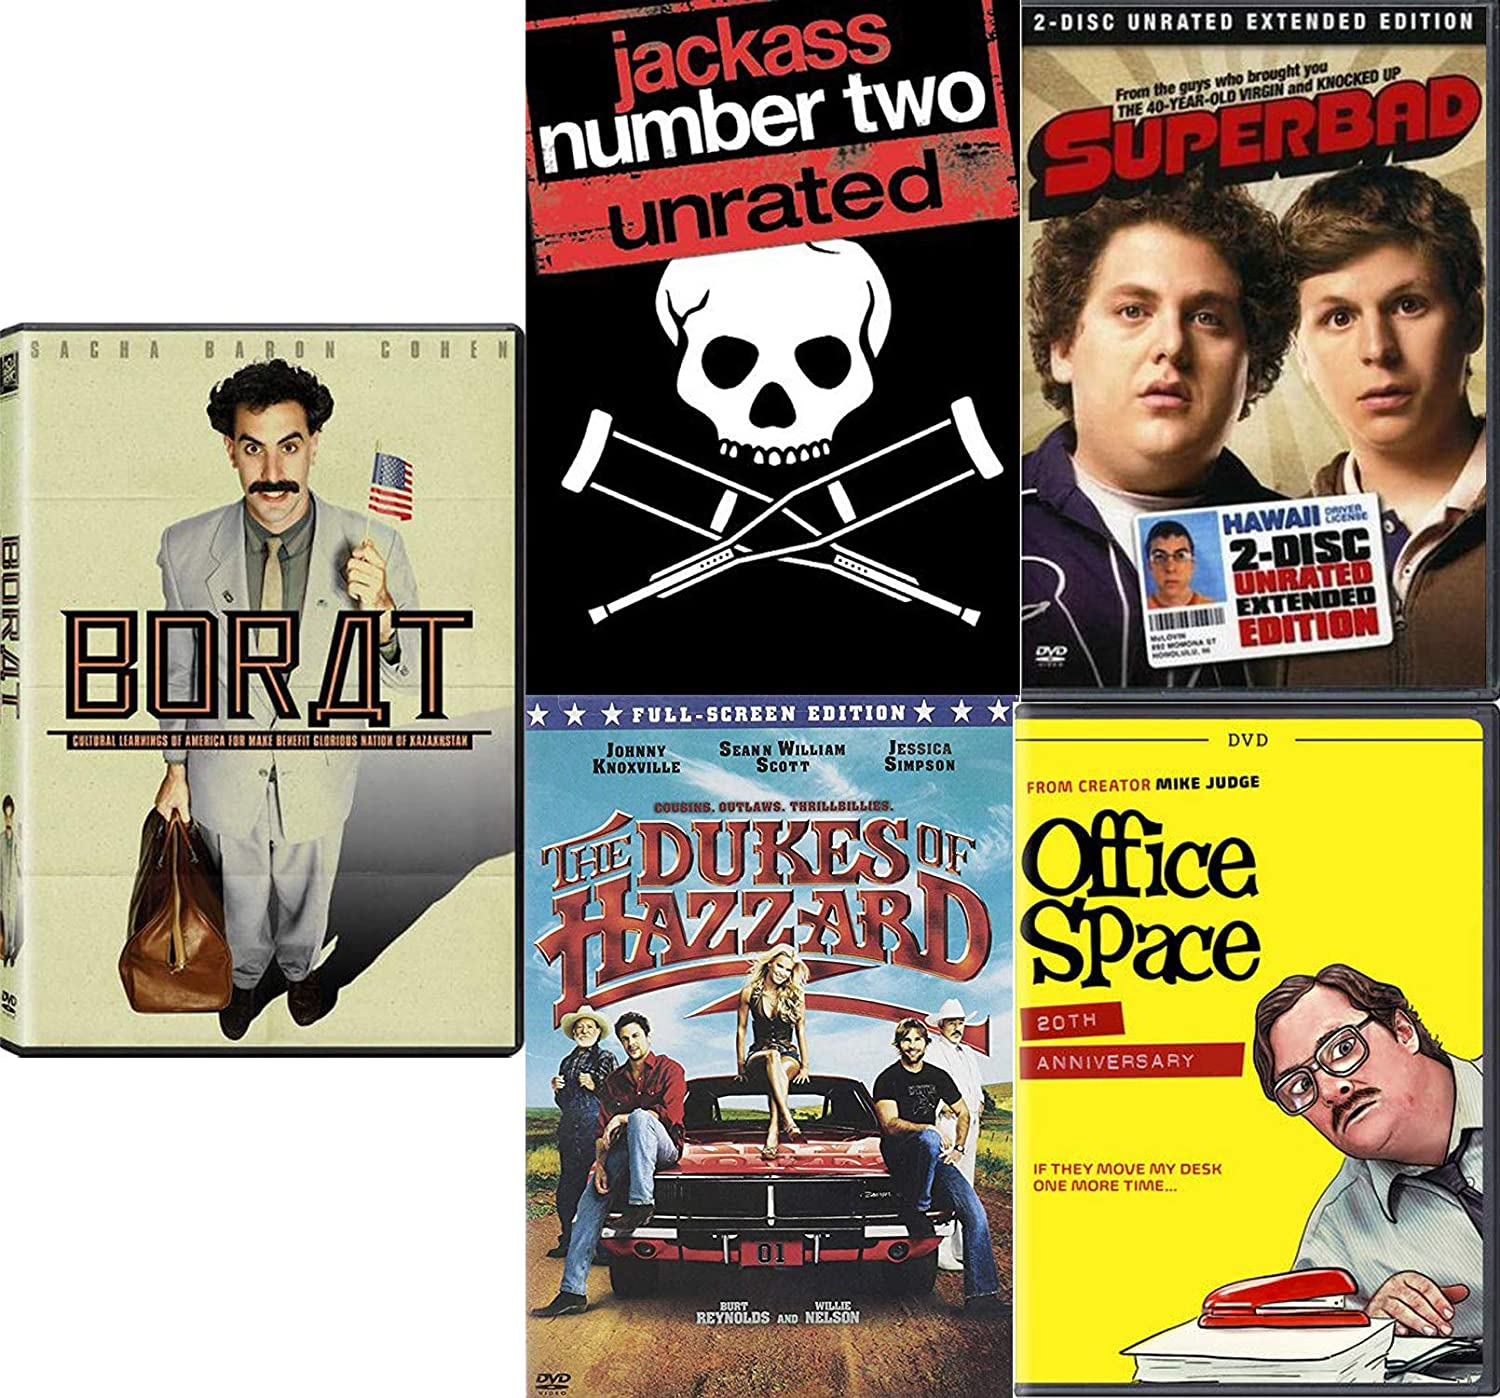 Outlaws Jerks & Freakin' Funny stuff Jackass Number Two (Unrated) and The Dukes of Hazzard / Superbad / Borat / Office Space 5-Movie Pack Ridiculous DVD Bundle